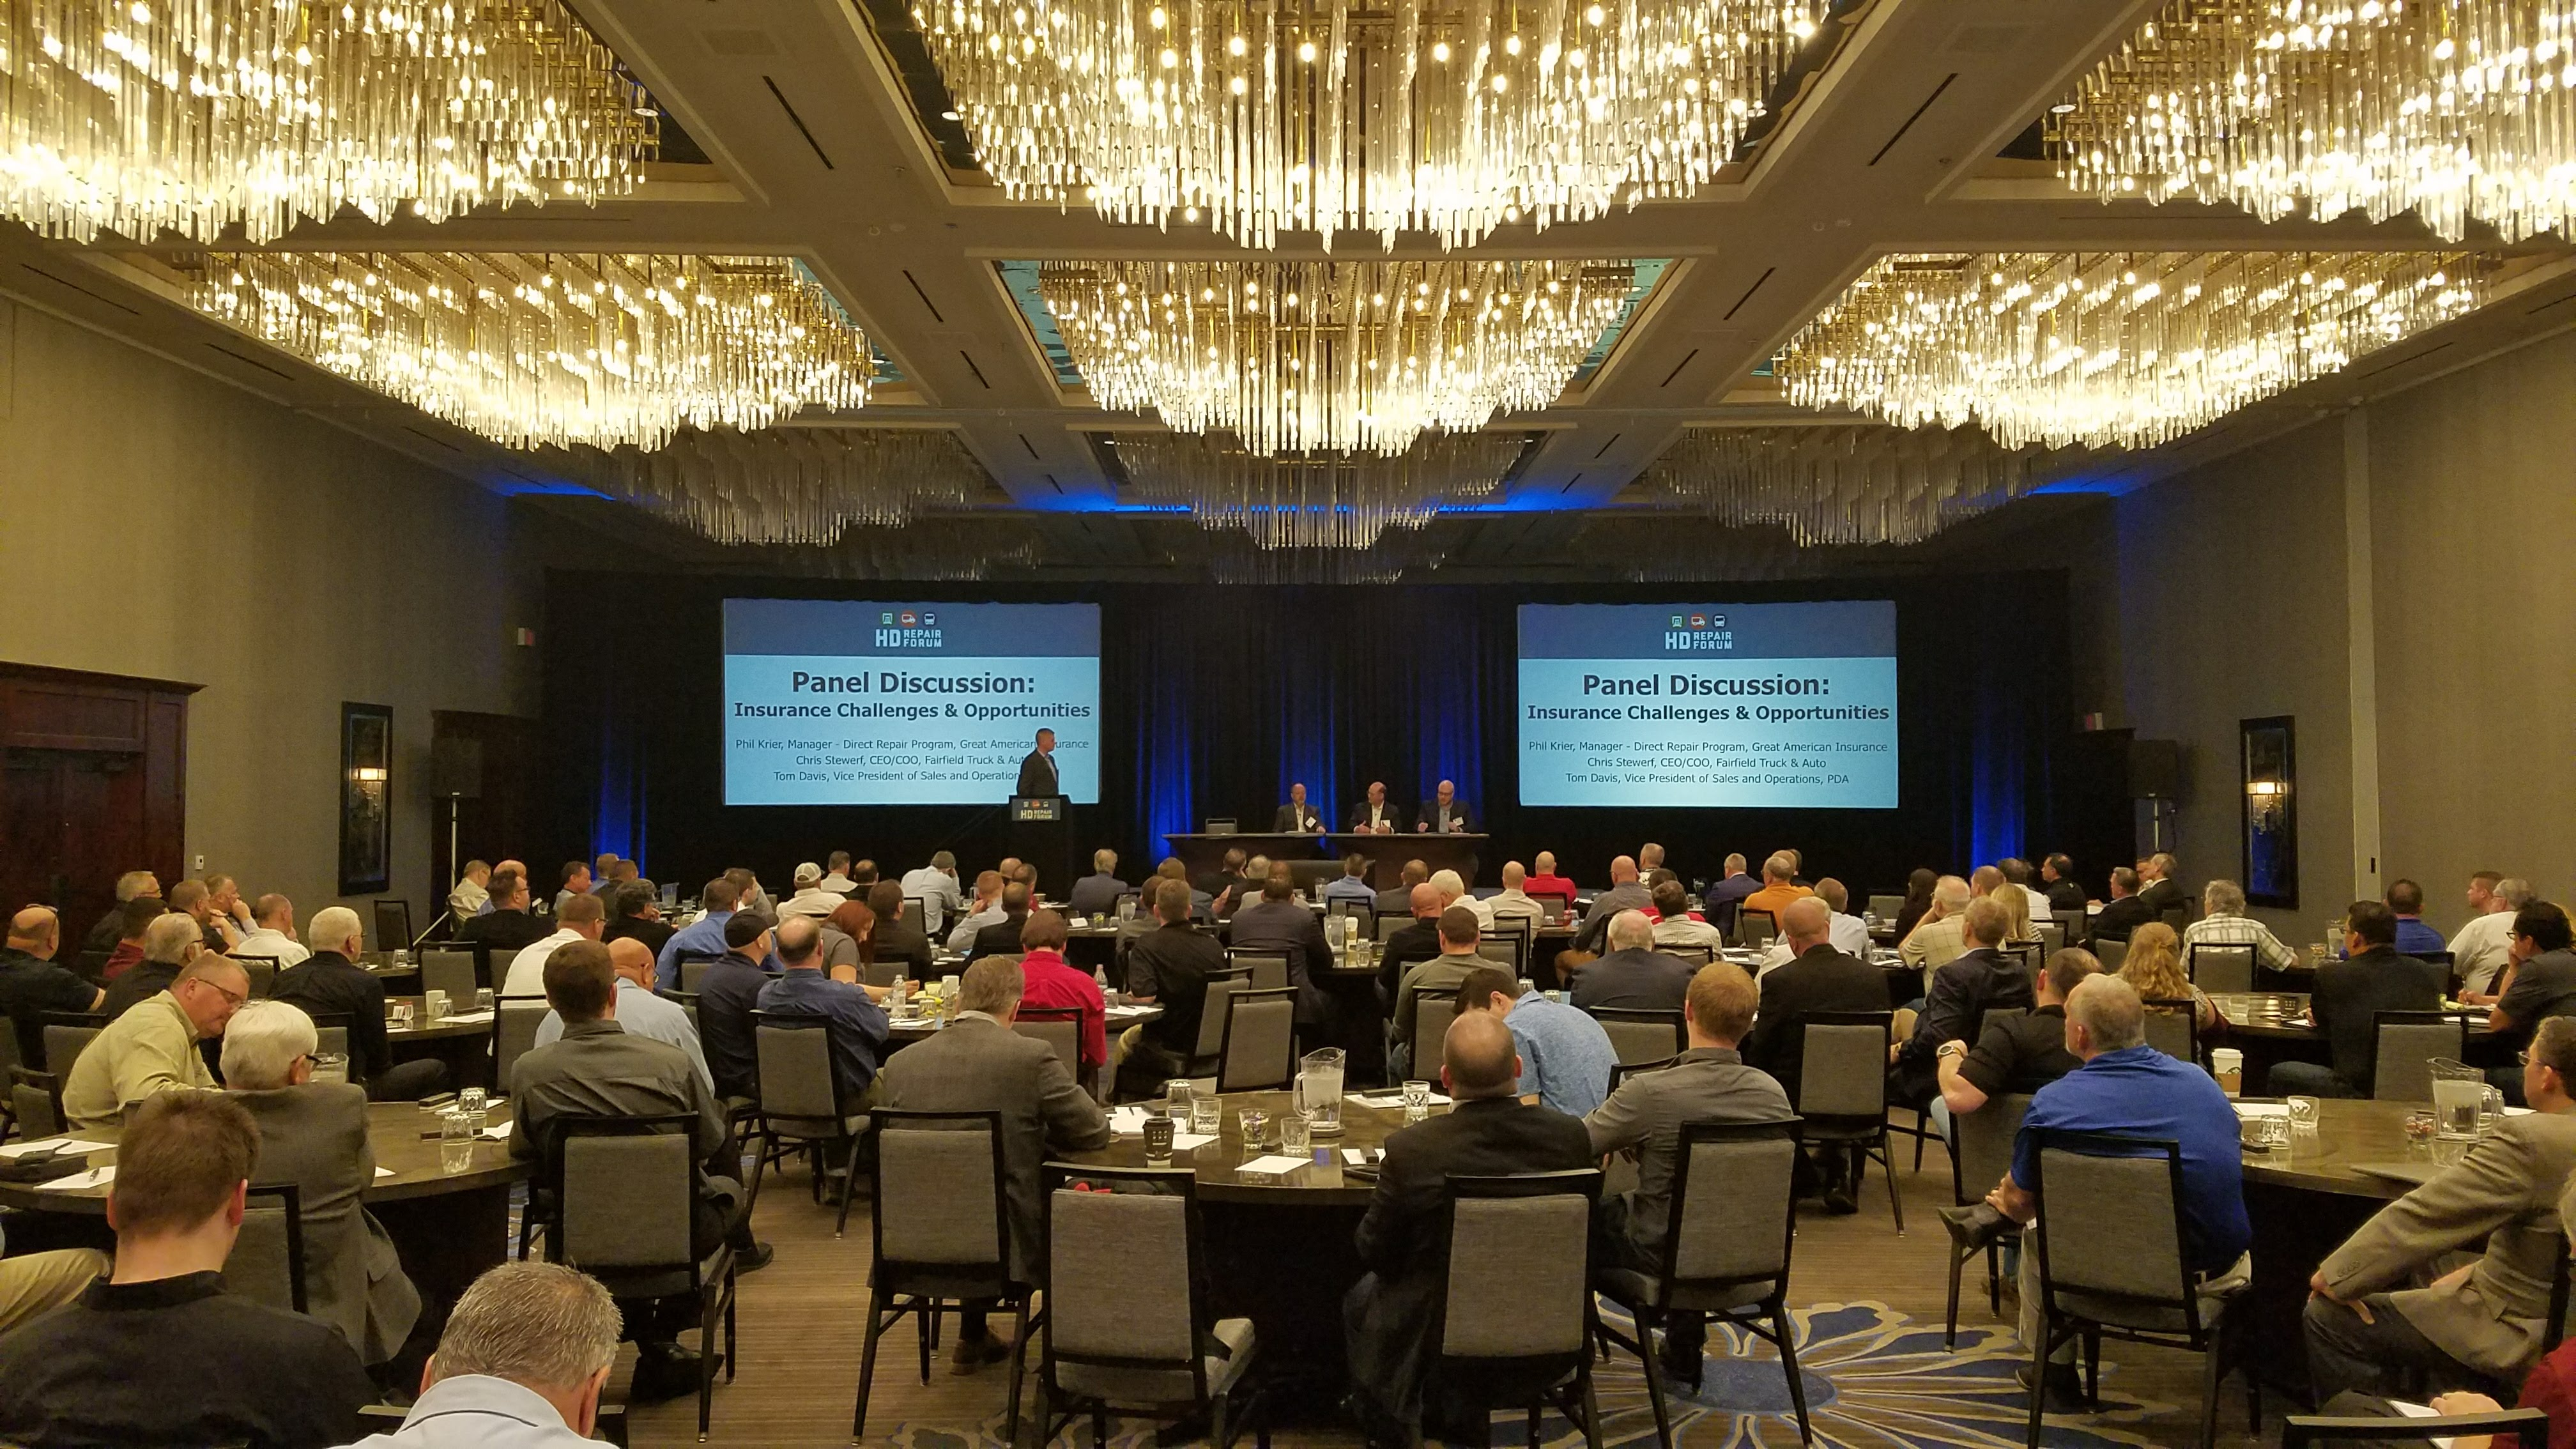 The HD Repair Forum Secures Date and Location for 2nd Annual Heavy-Duty Collision Repair Conference